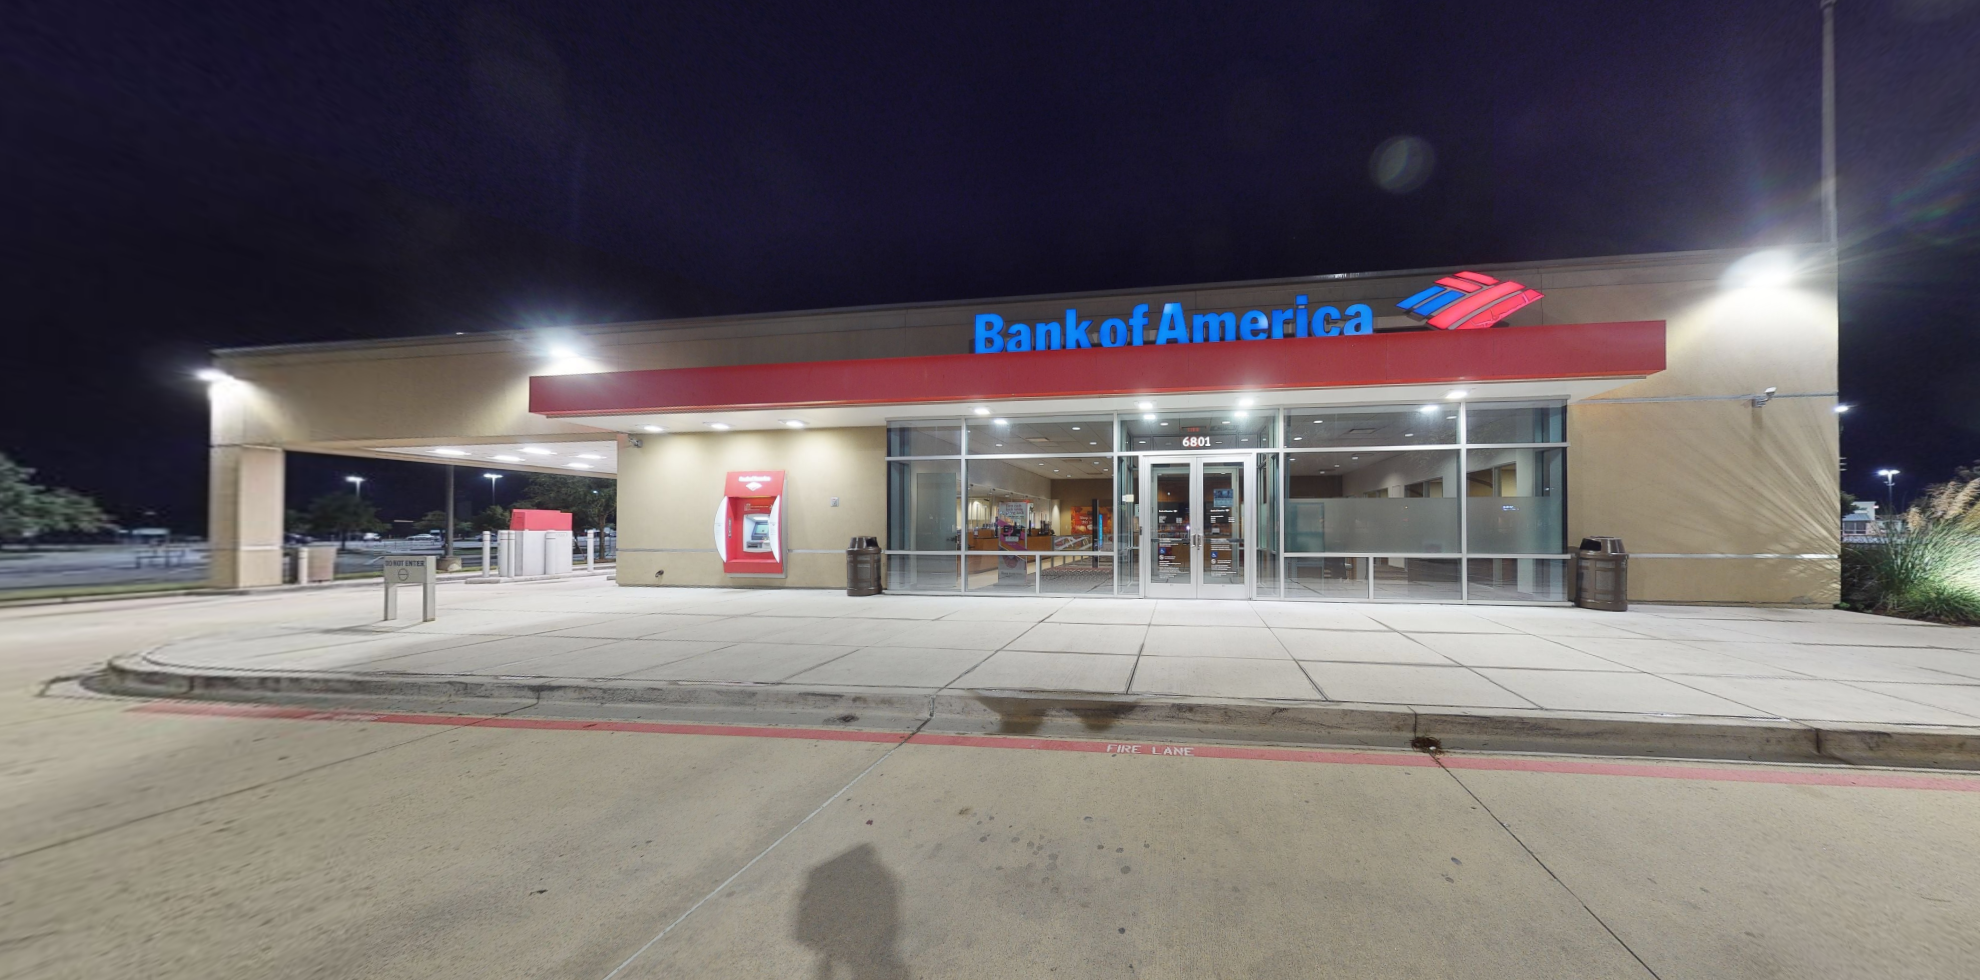 Bank of America financial center with drive-thru ATM   6801 S Fry Rd, Katy, TX 77494